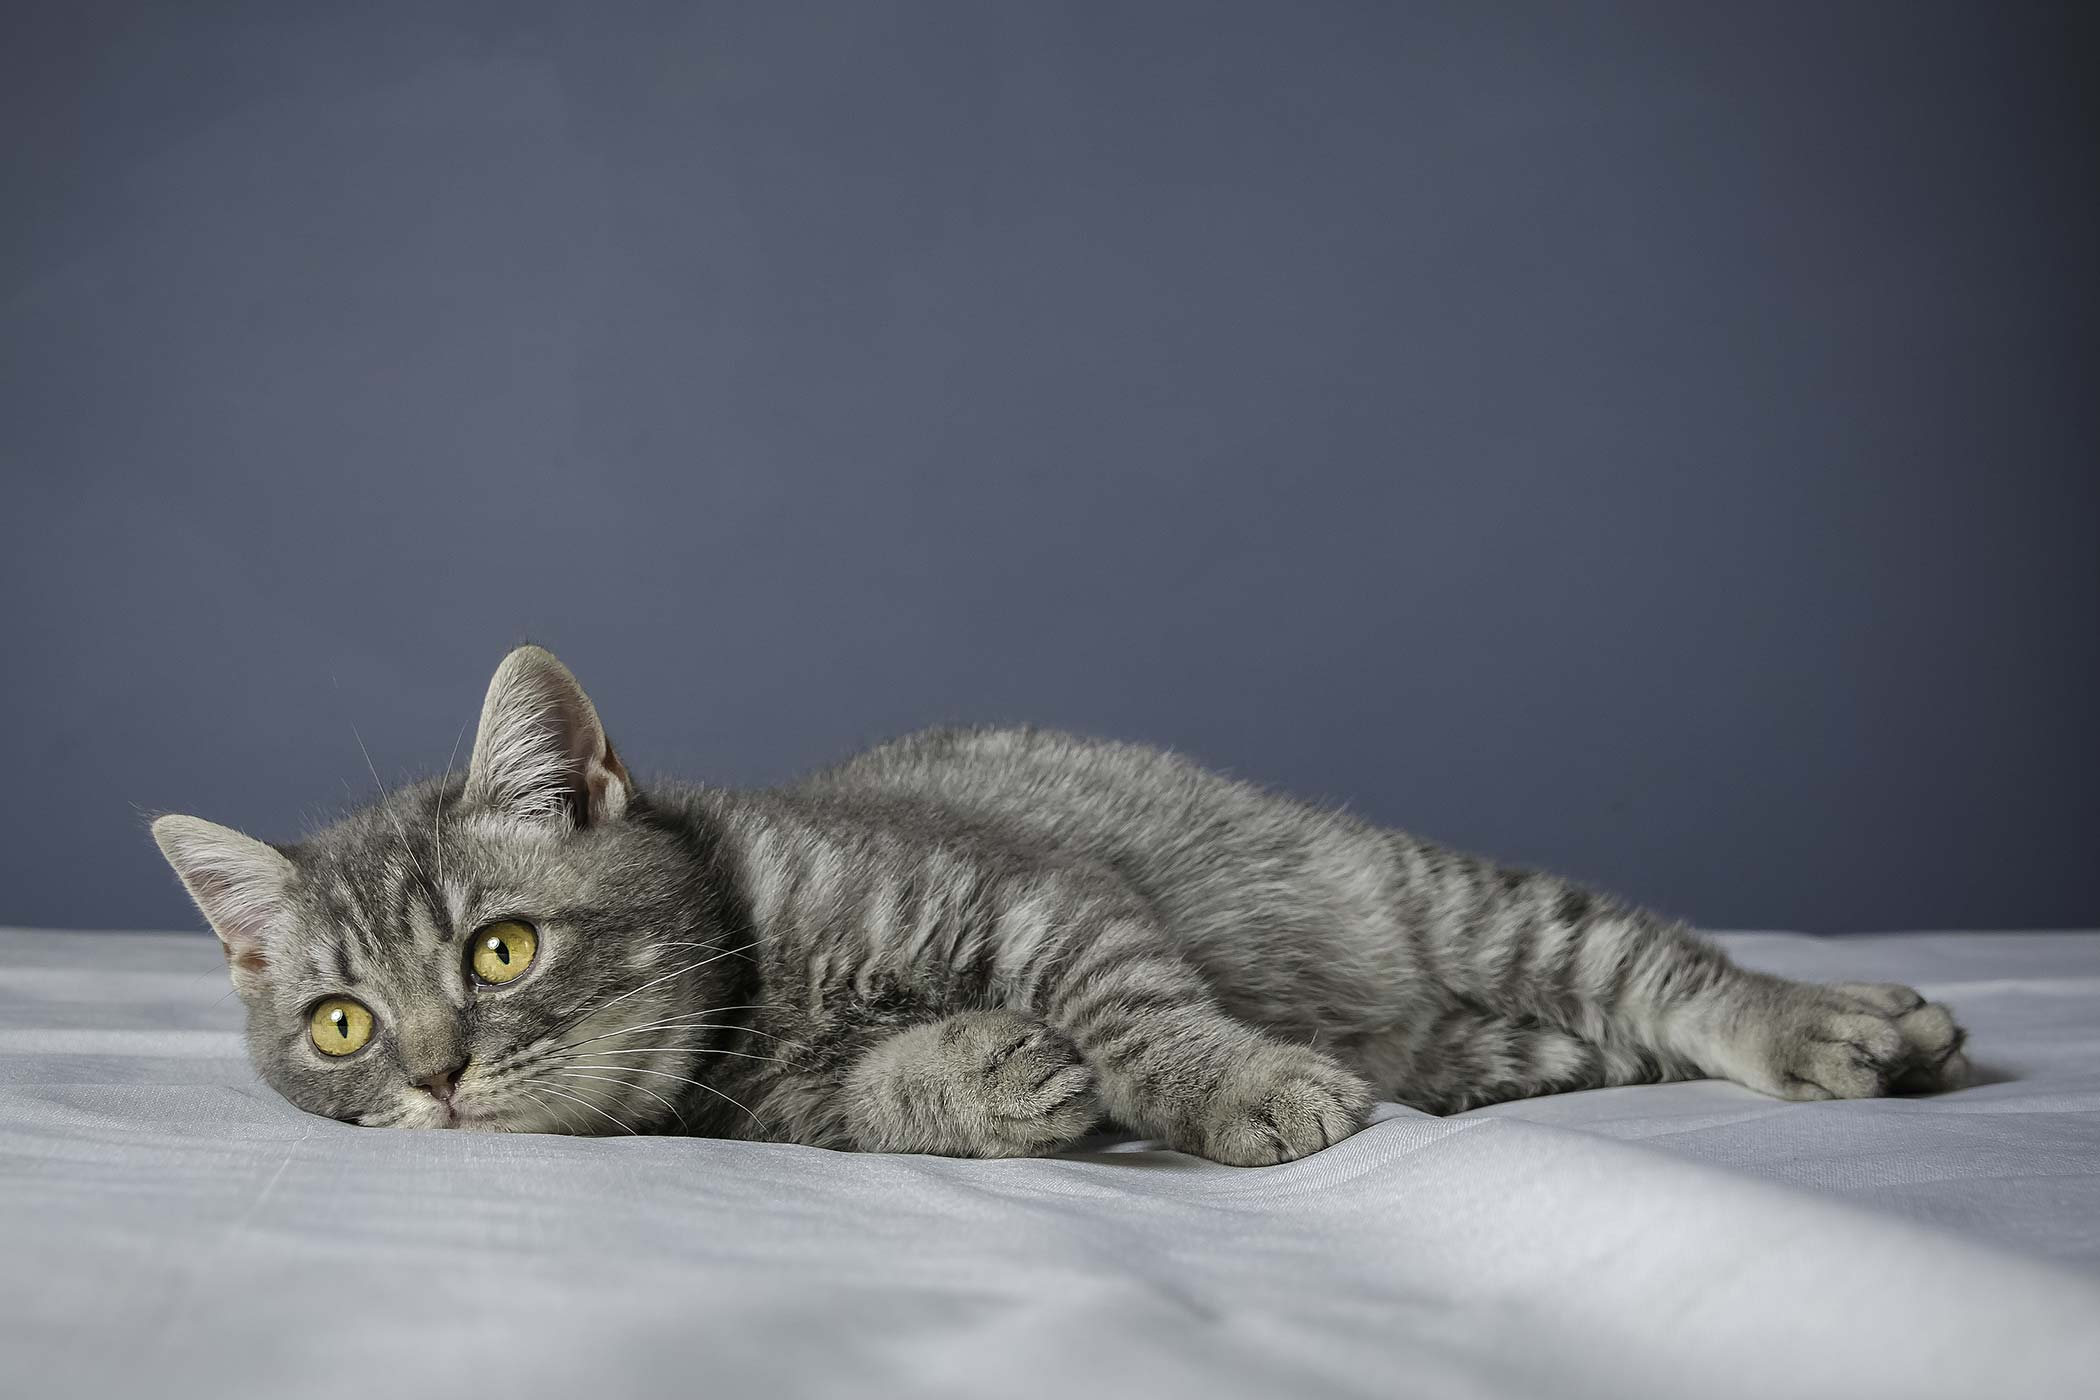 Clotting Deficiency in Cats